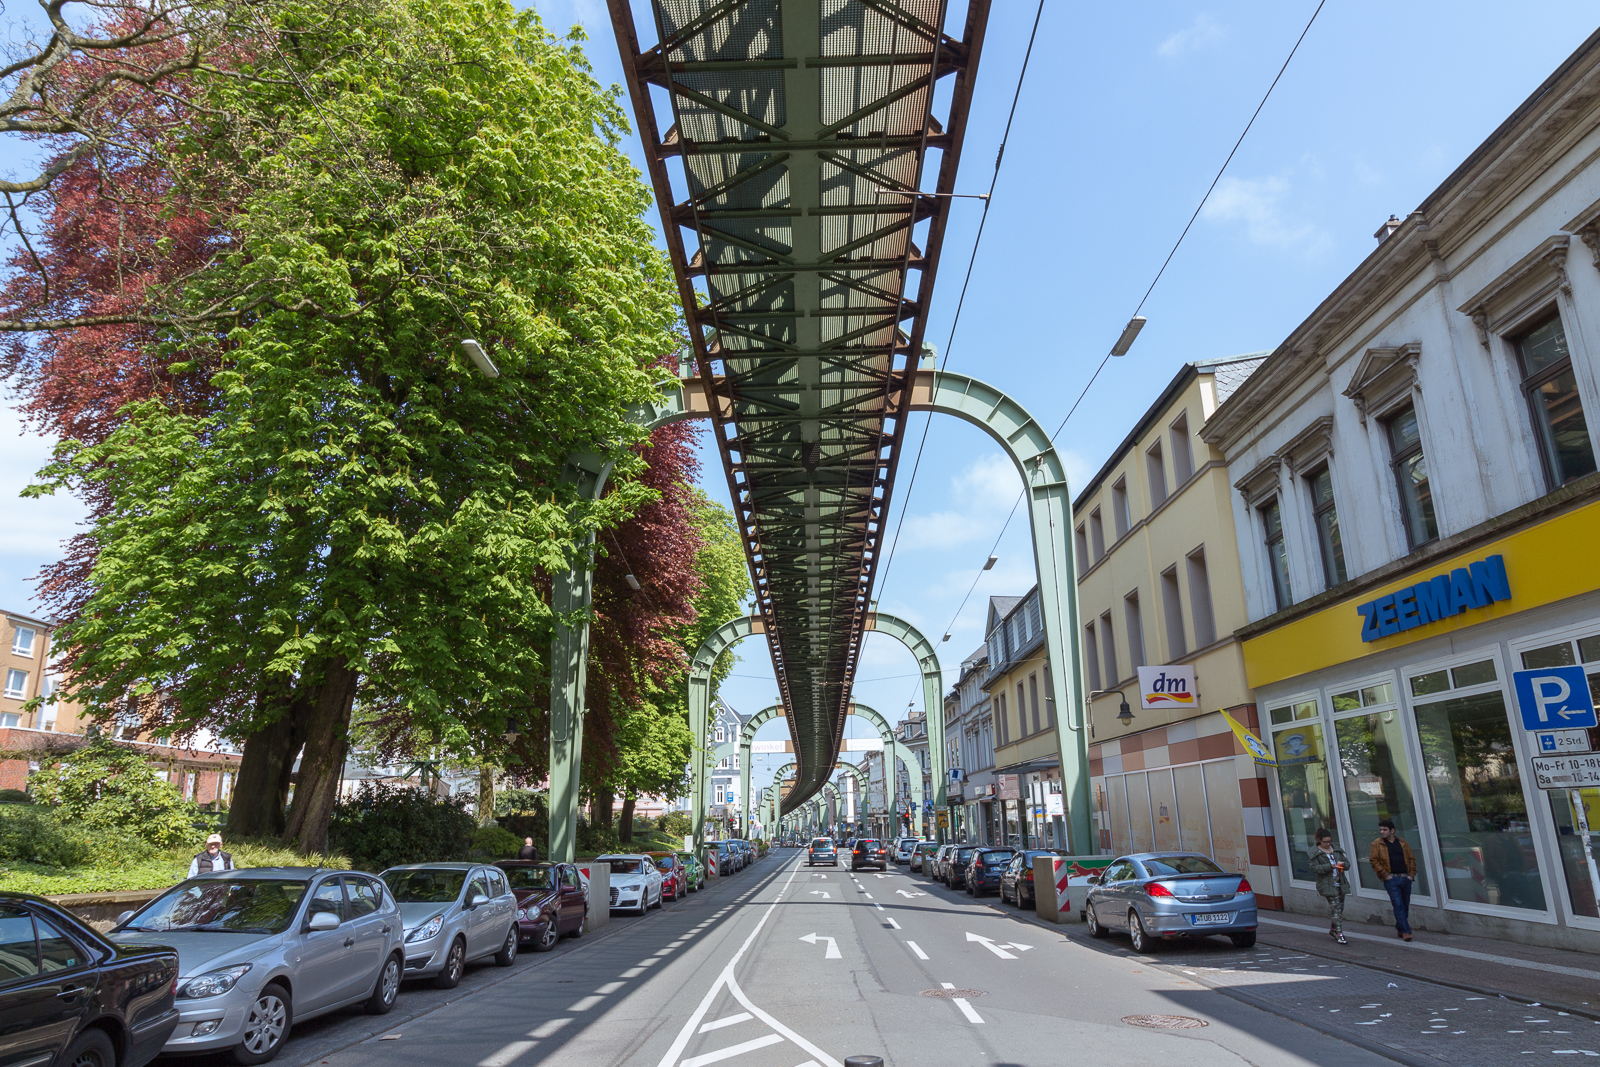 wuppertal-vielweib-on-tour-3143